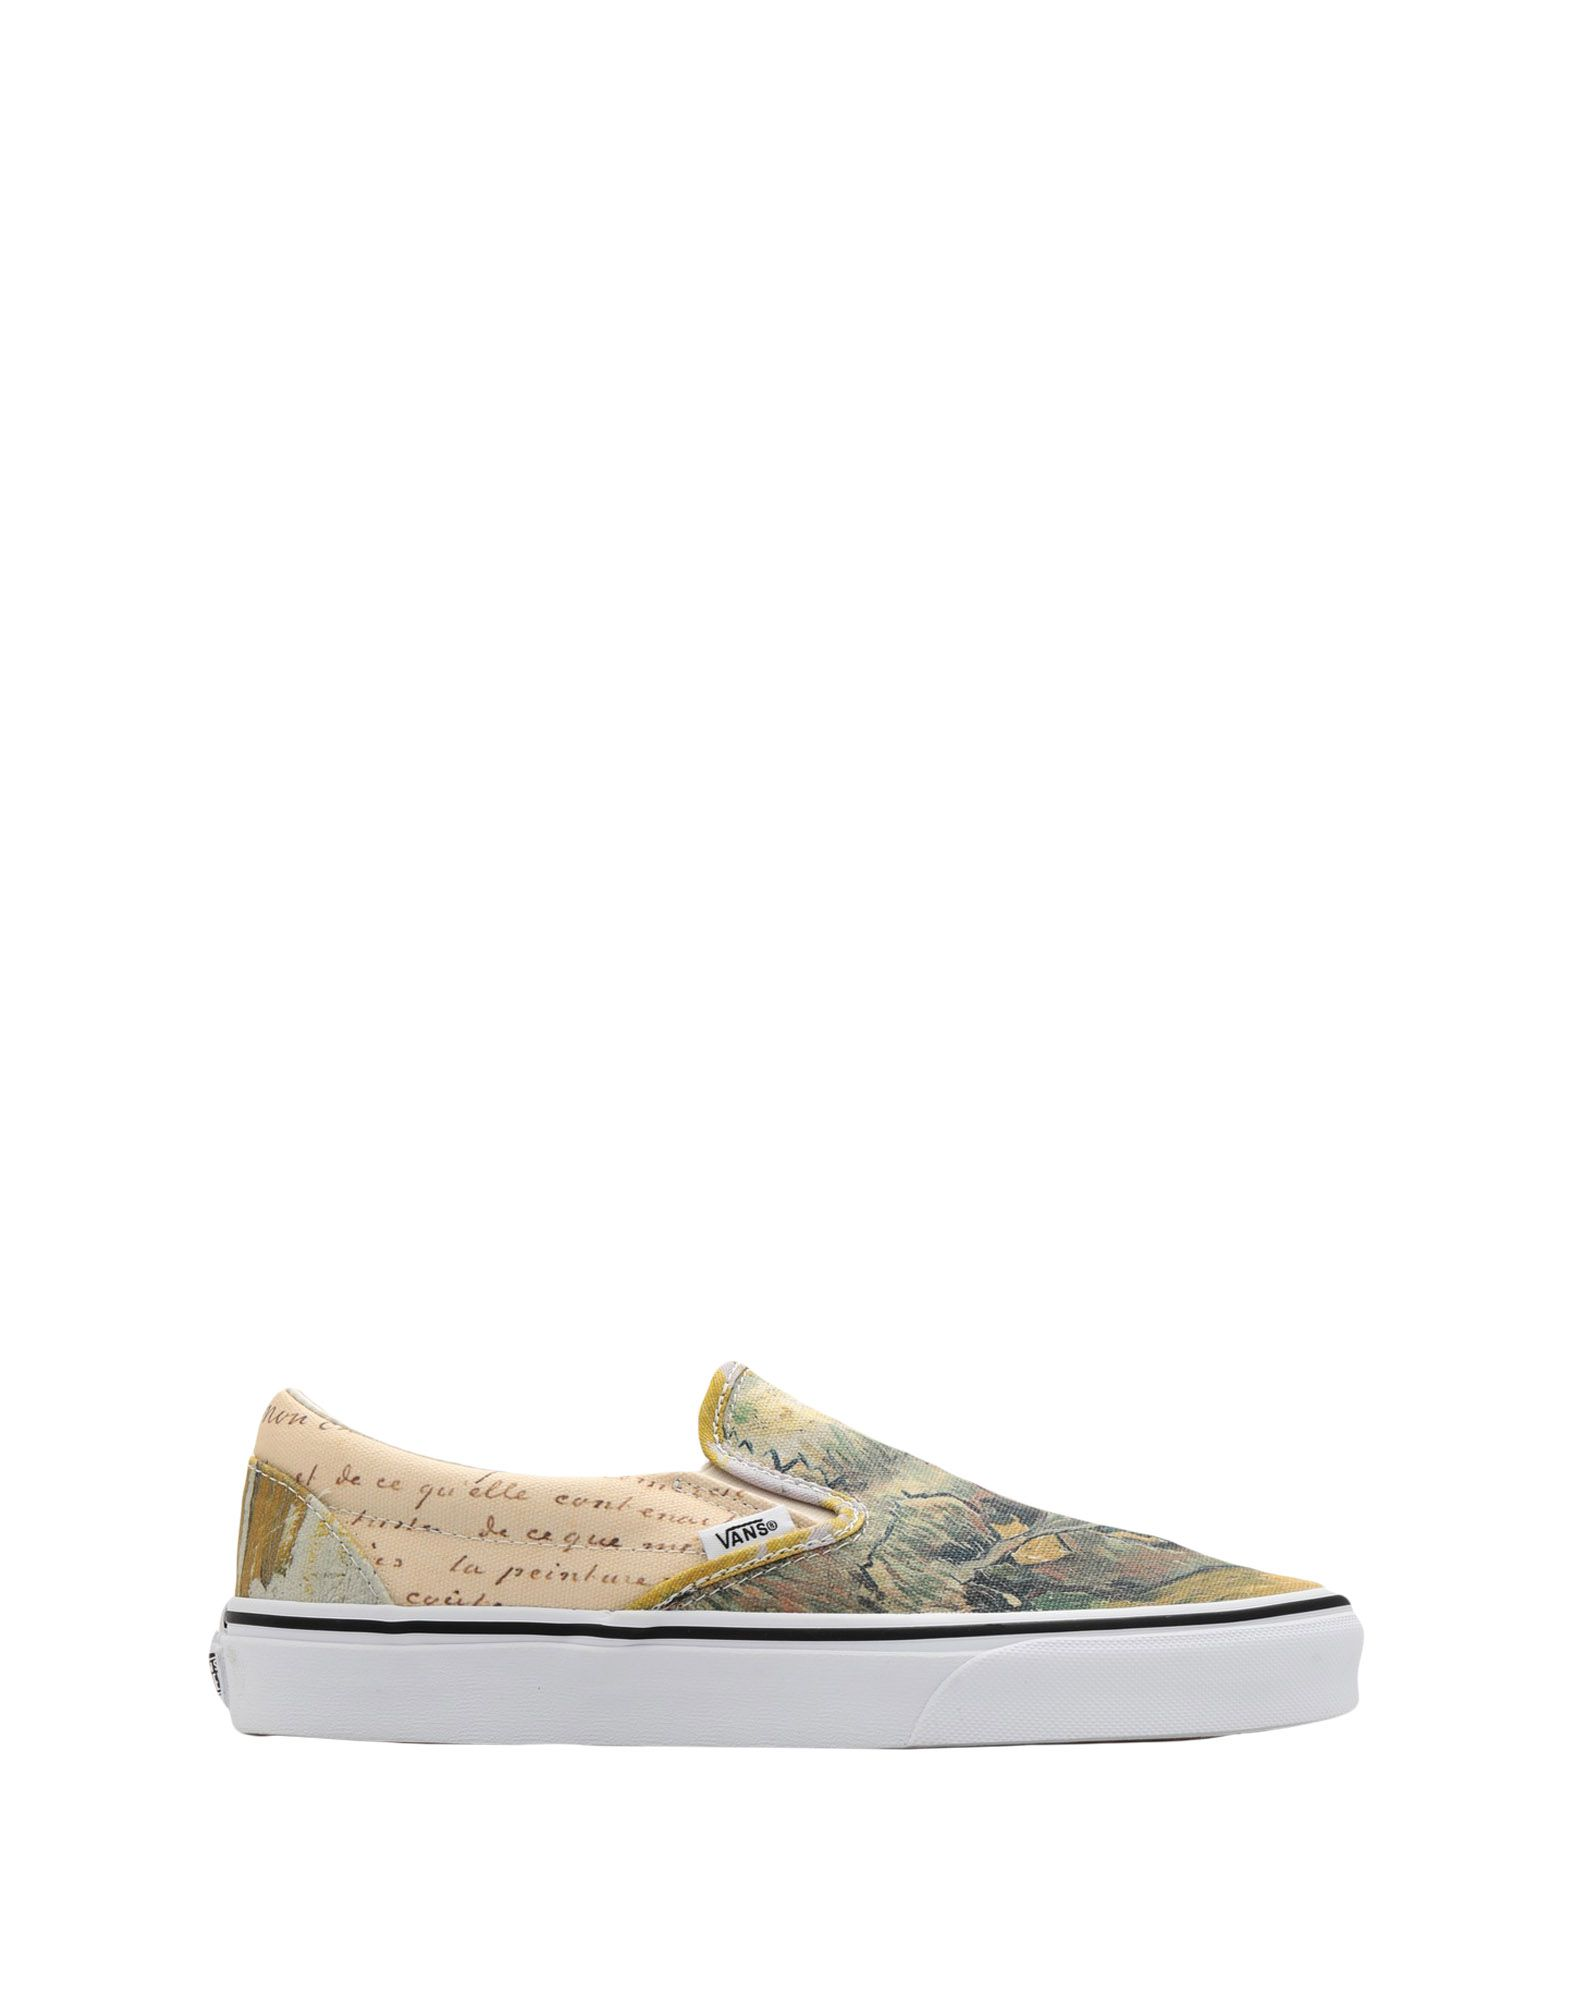 Vans Ua Classic Slip-On Sneakers (Vincent Van Gogh) - Sneakers Slip-On - Women Vans Sneakers online on  United Kingdom - 11559664WI 682e20